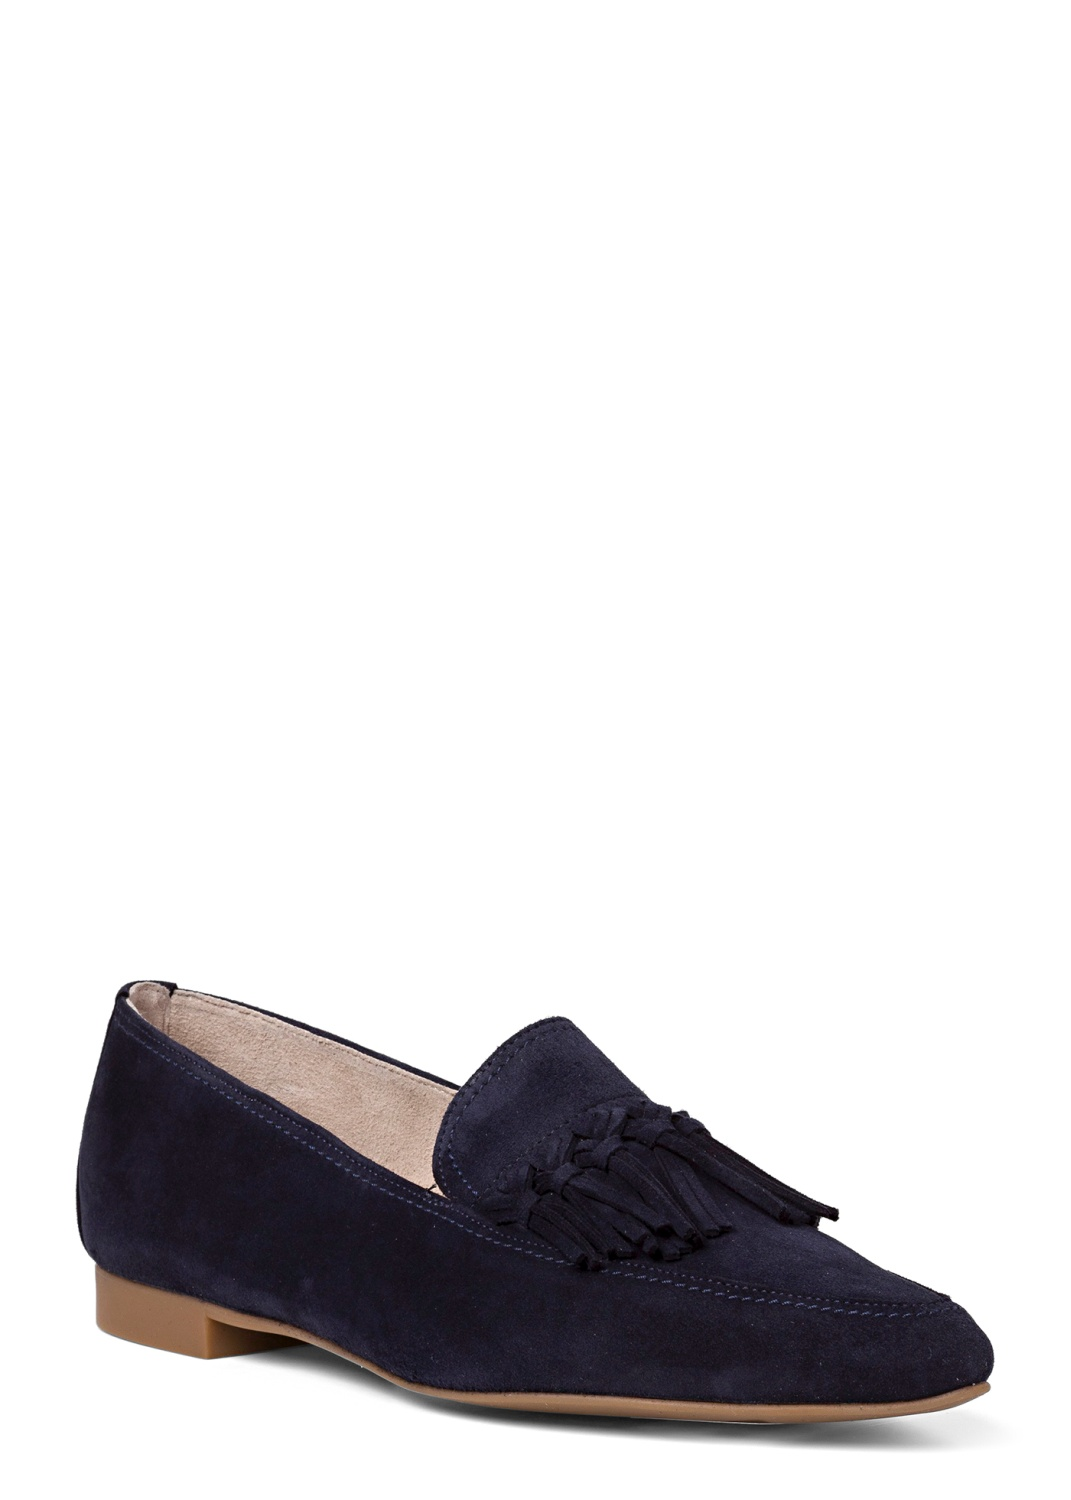 14_Pointy Loafer Tasseln Suede image number 1